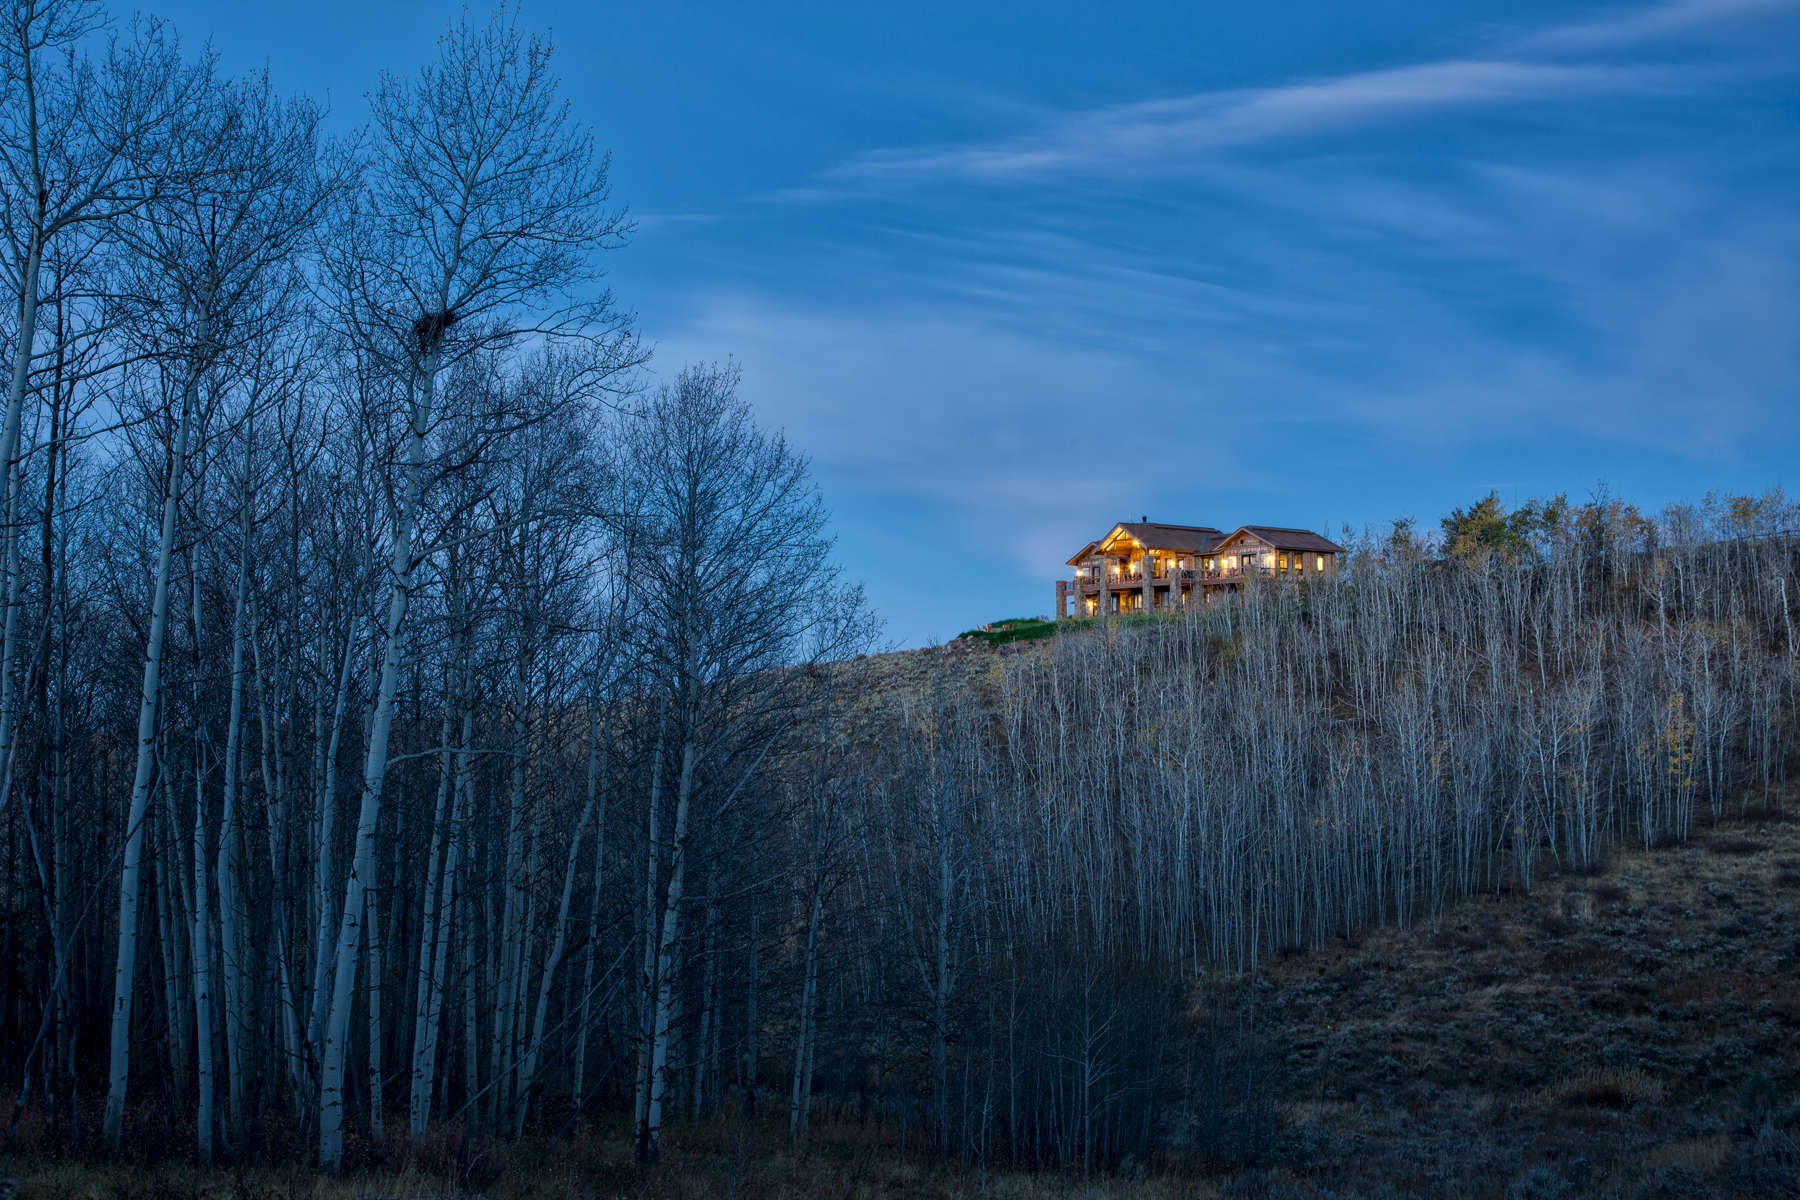 Long distance view through the woods of a rustic mountain home in Idaho illuminated at dawn, with blue skies.